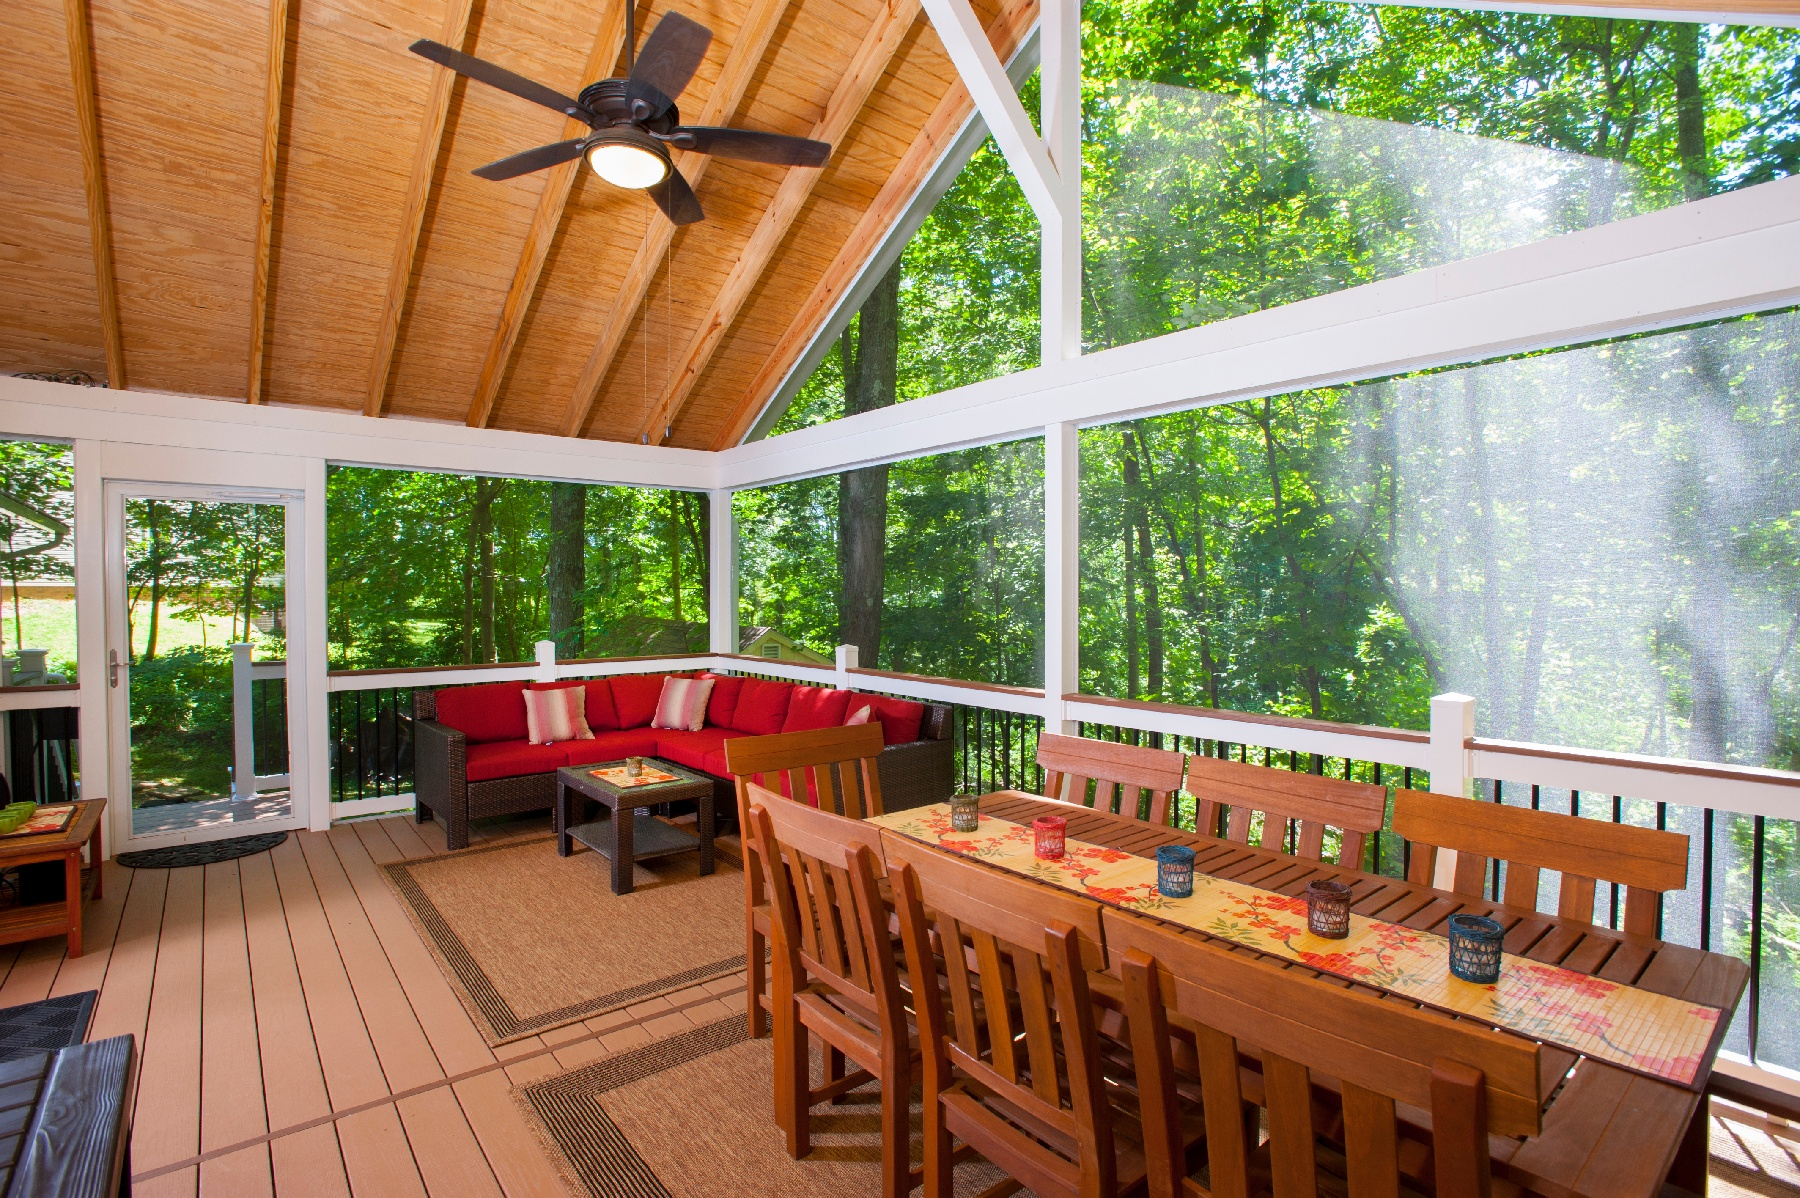 bug-proofed screen room design in potomac, maryland